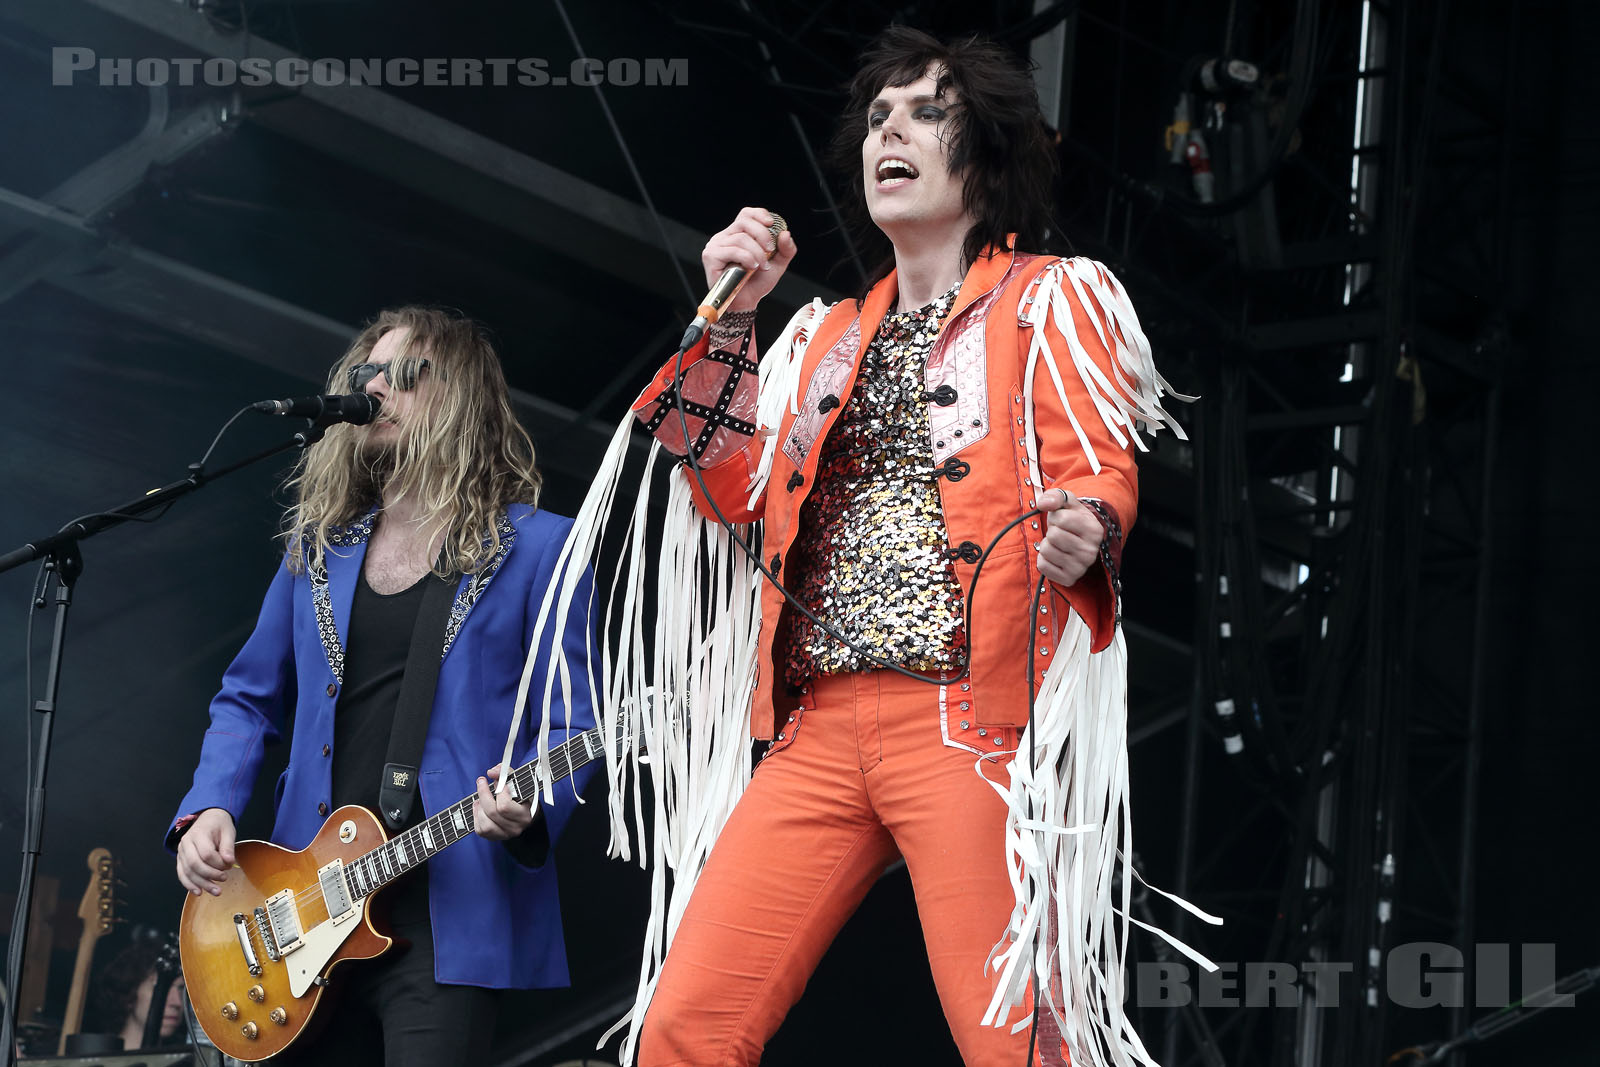 THE STRUTS - 2018-06-17 - BRETIGNY-SUR-ORGE - Base Aerienne 217 - Main Stage 2